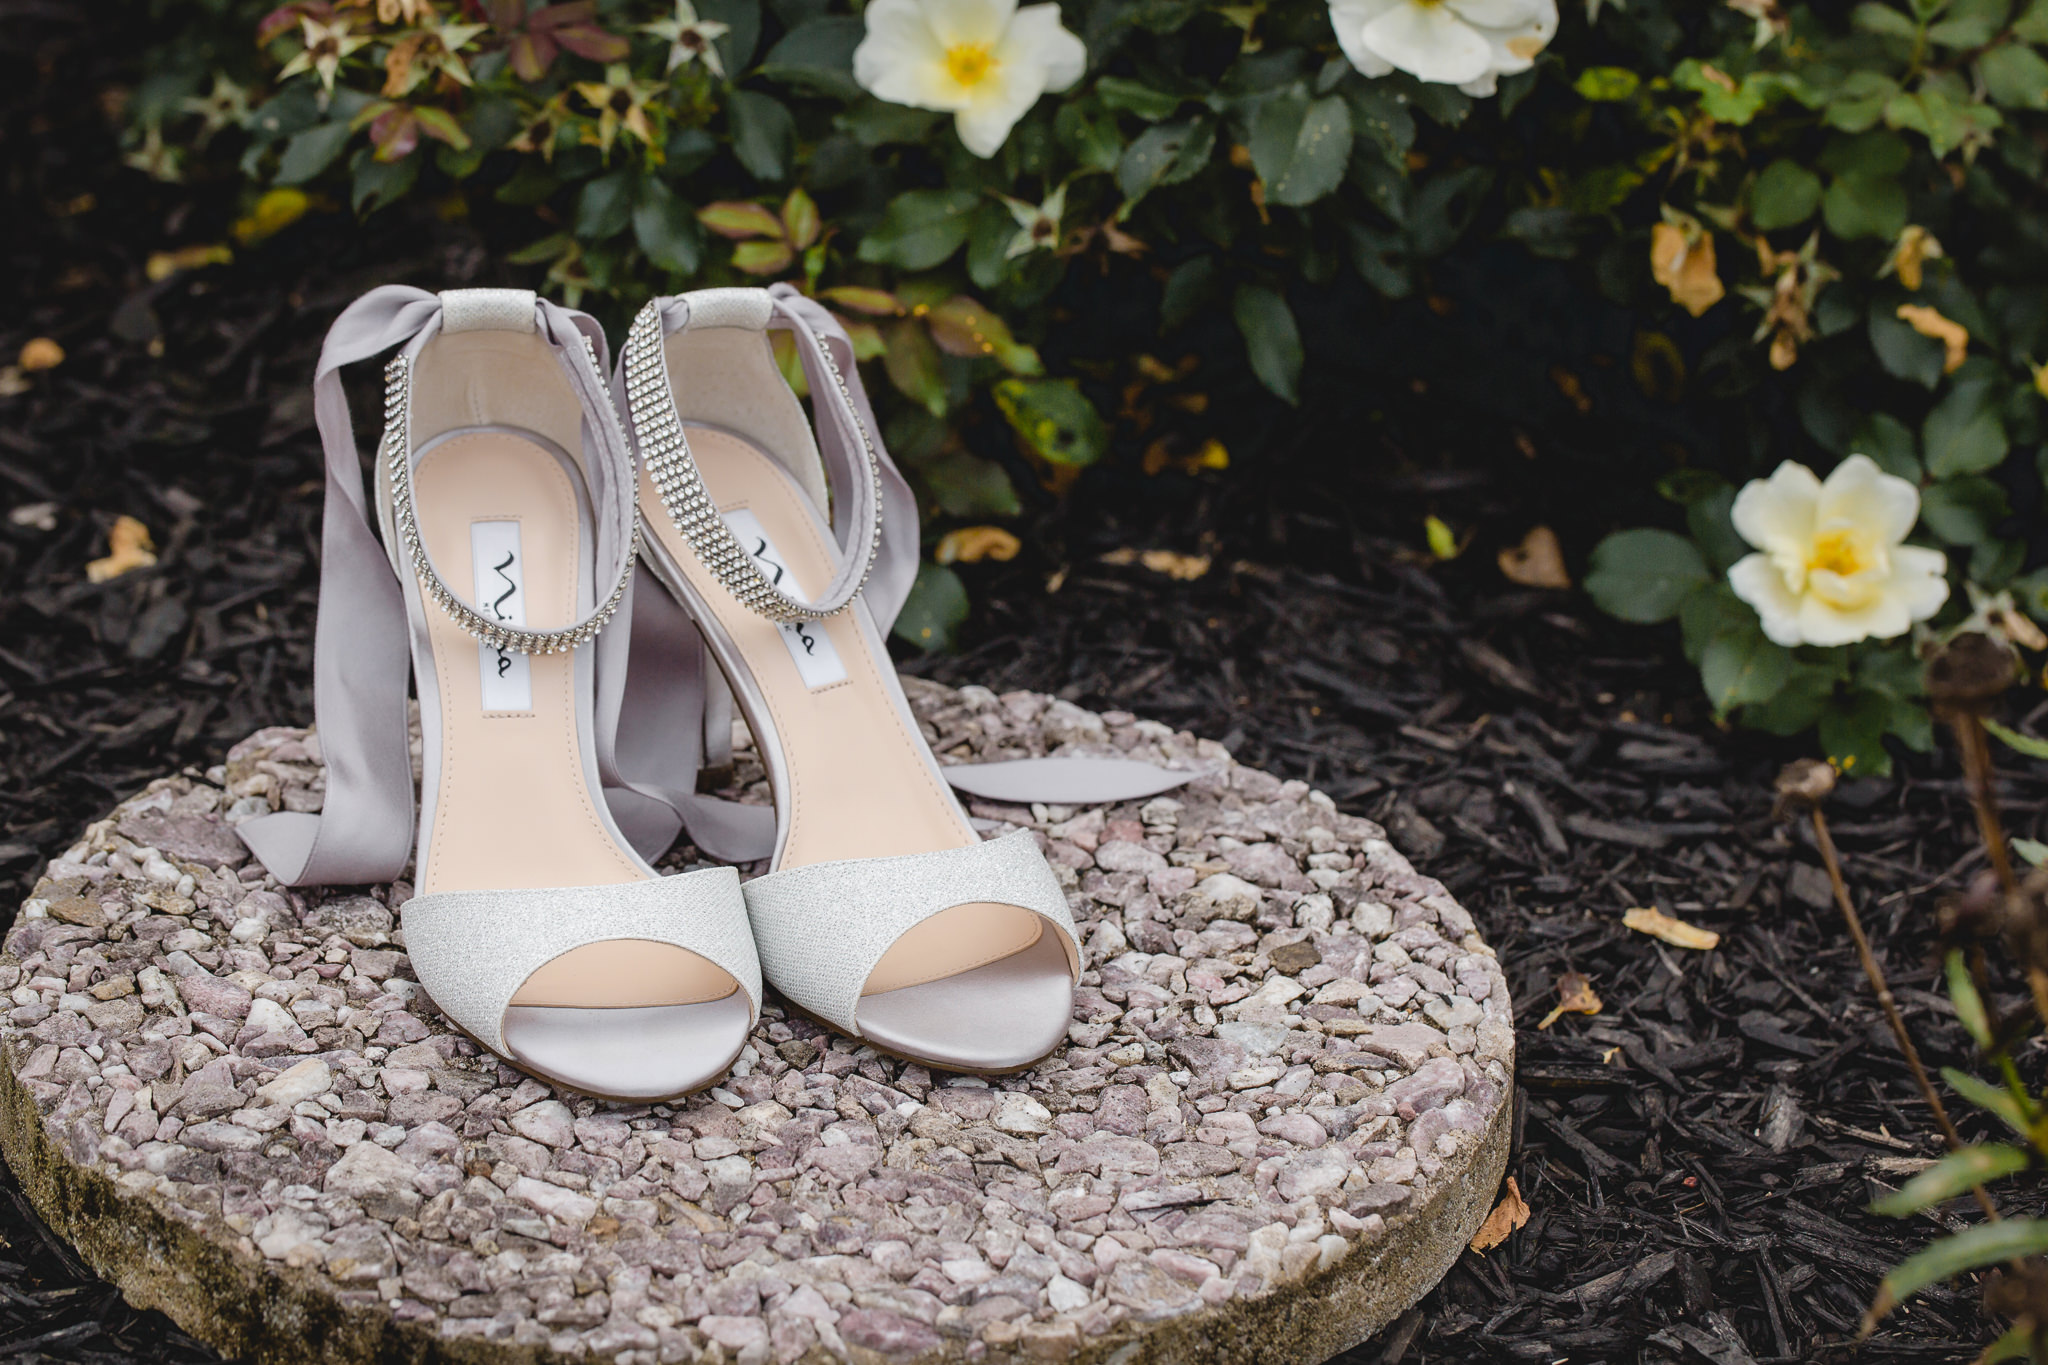 Bridal shoes by Nina rest on a rock before a wedding at the Fez